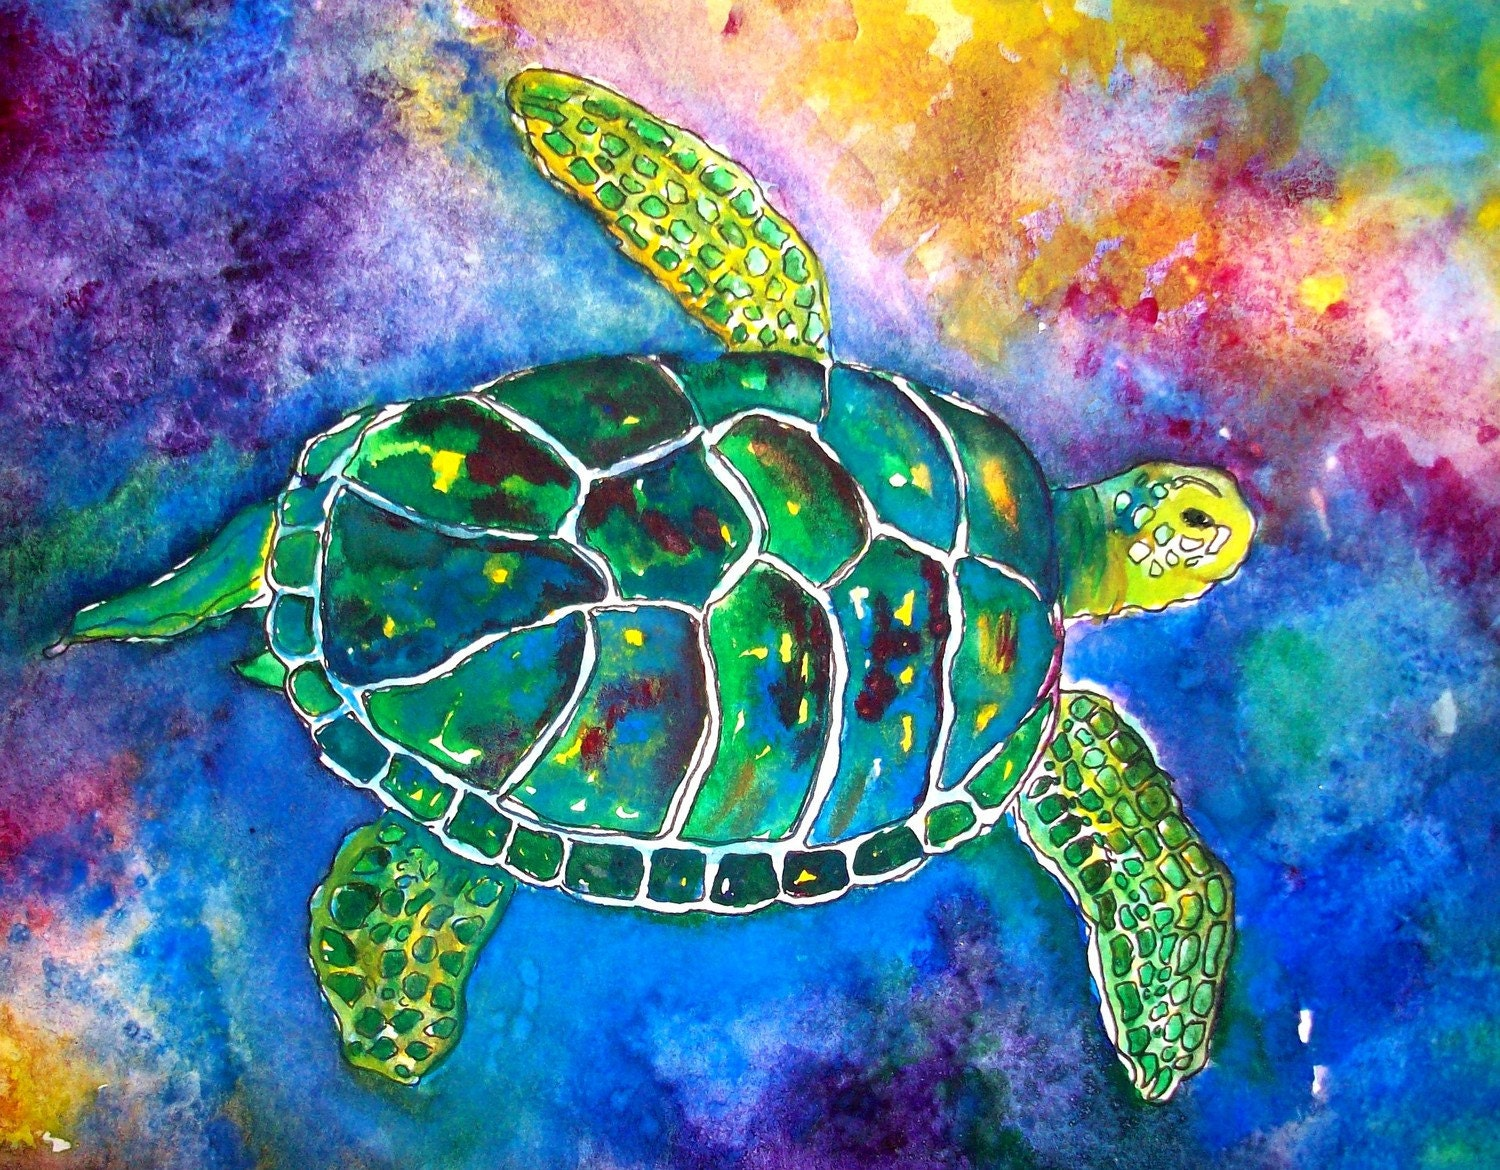 Honu Sea Turtle 5x7 Print By Artbymtb On Etsy